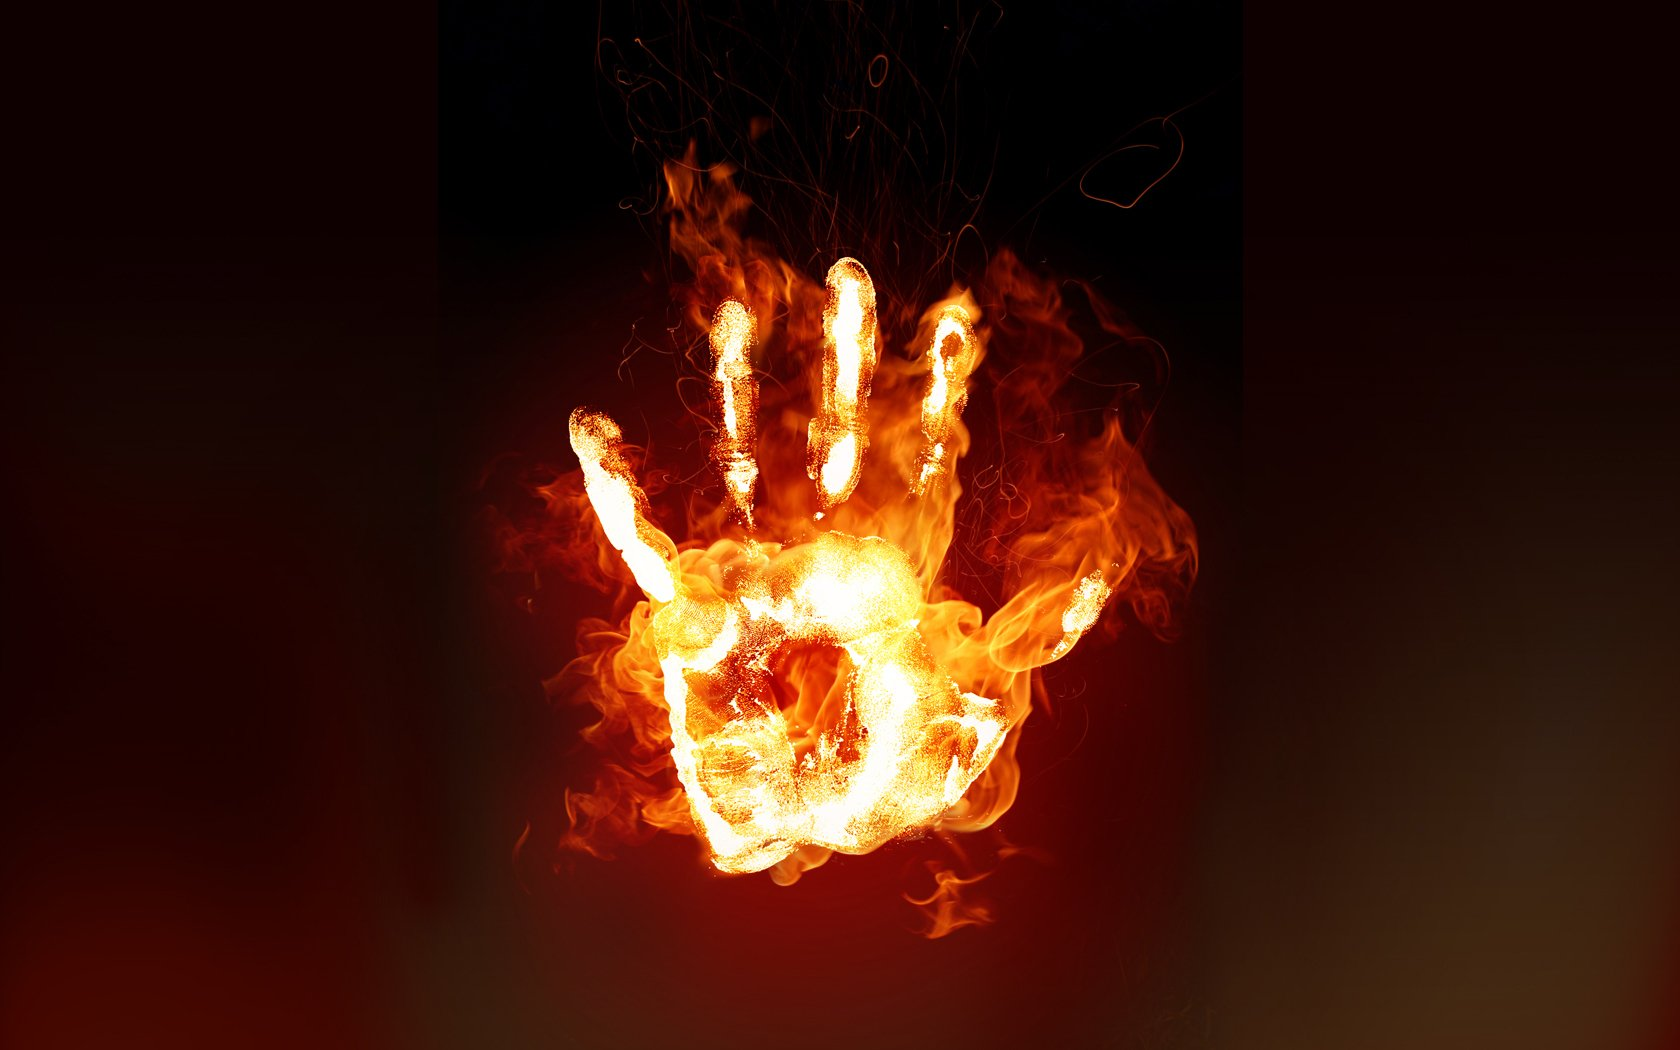 Dark - Artistic  Fire Hand Dark Flame Wallpaper